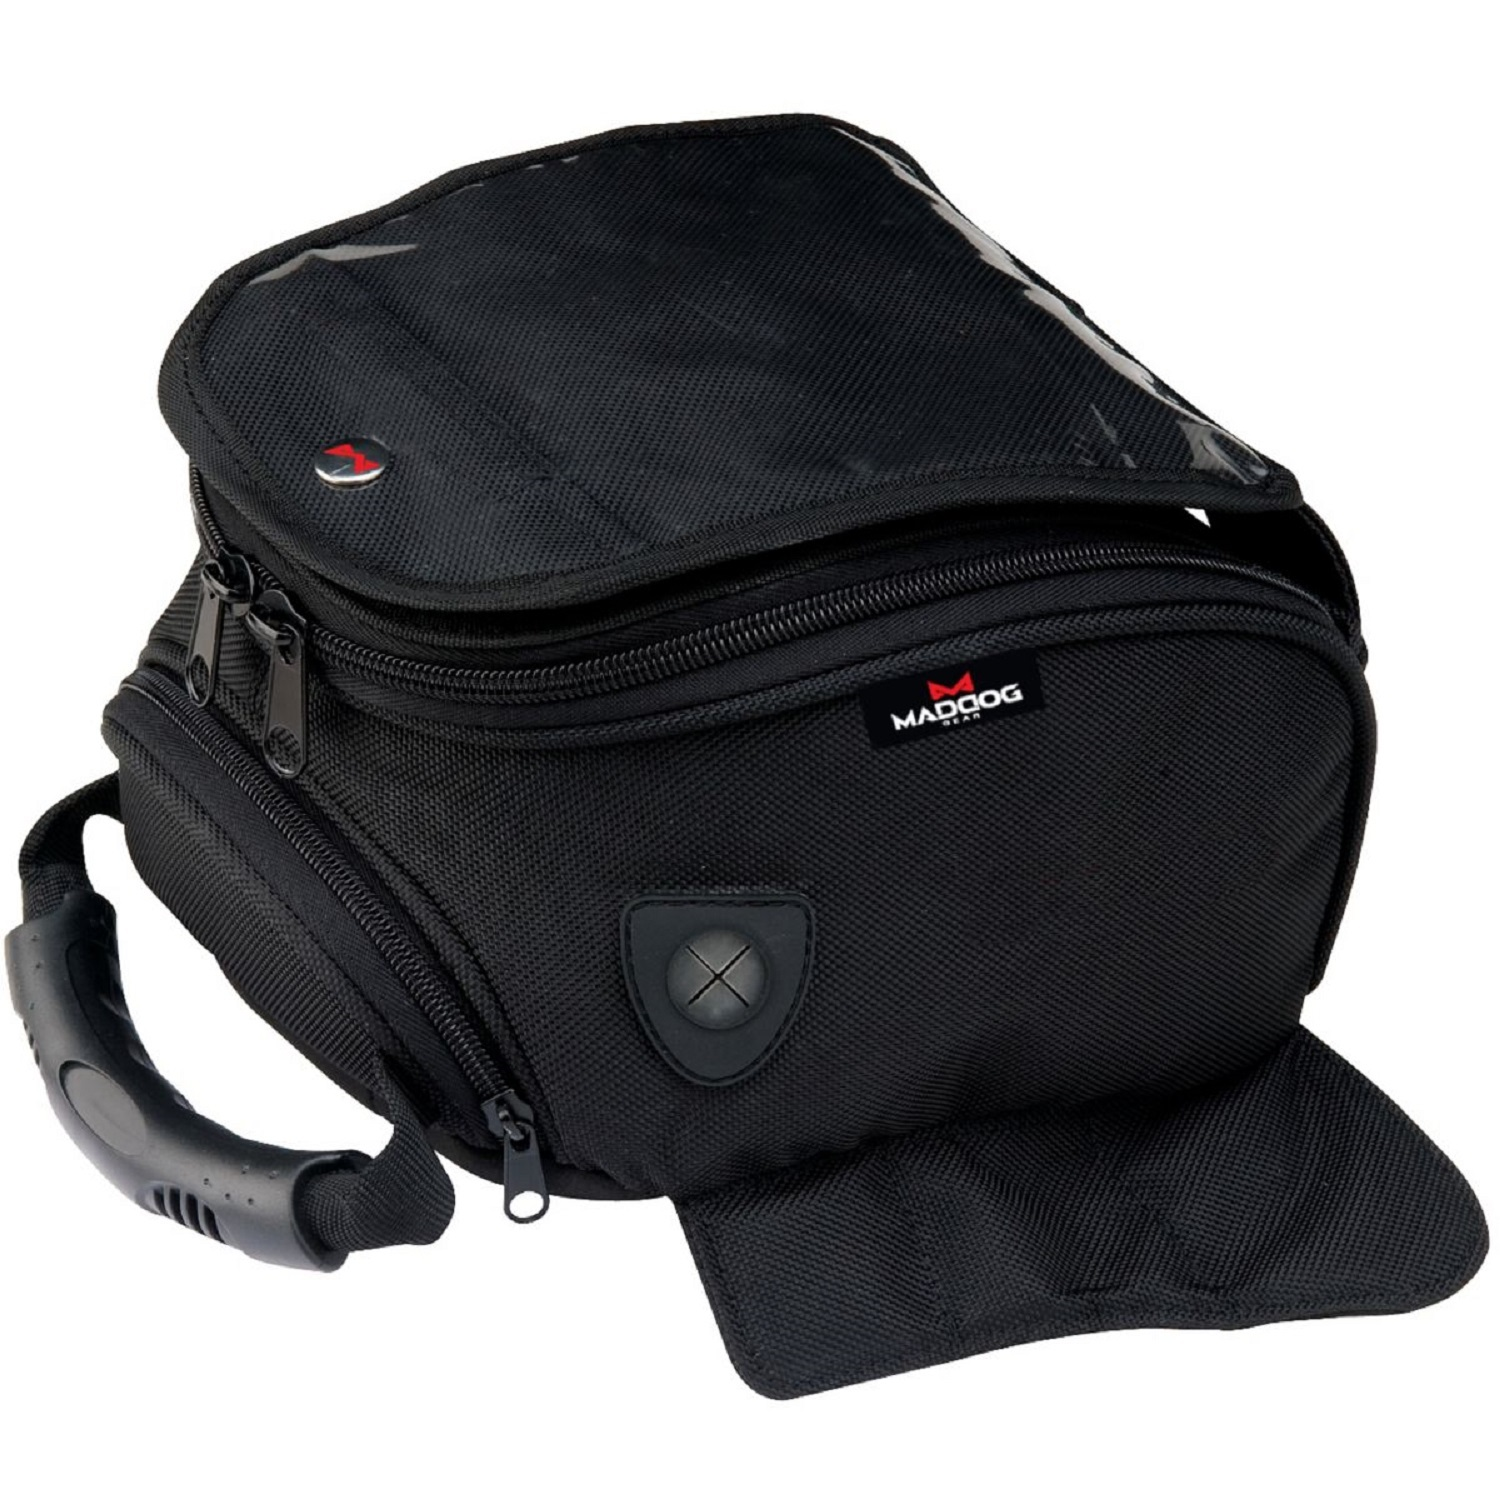 MadDog Gear Motorcycle Magnetic Tank Bag